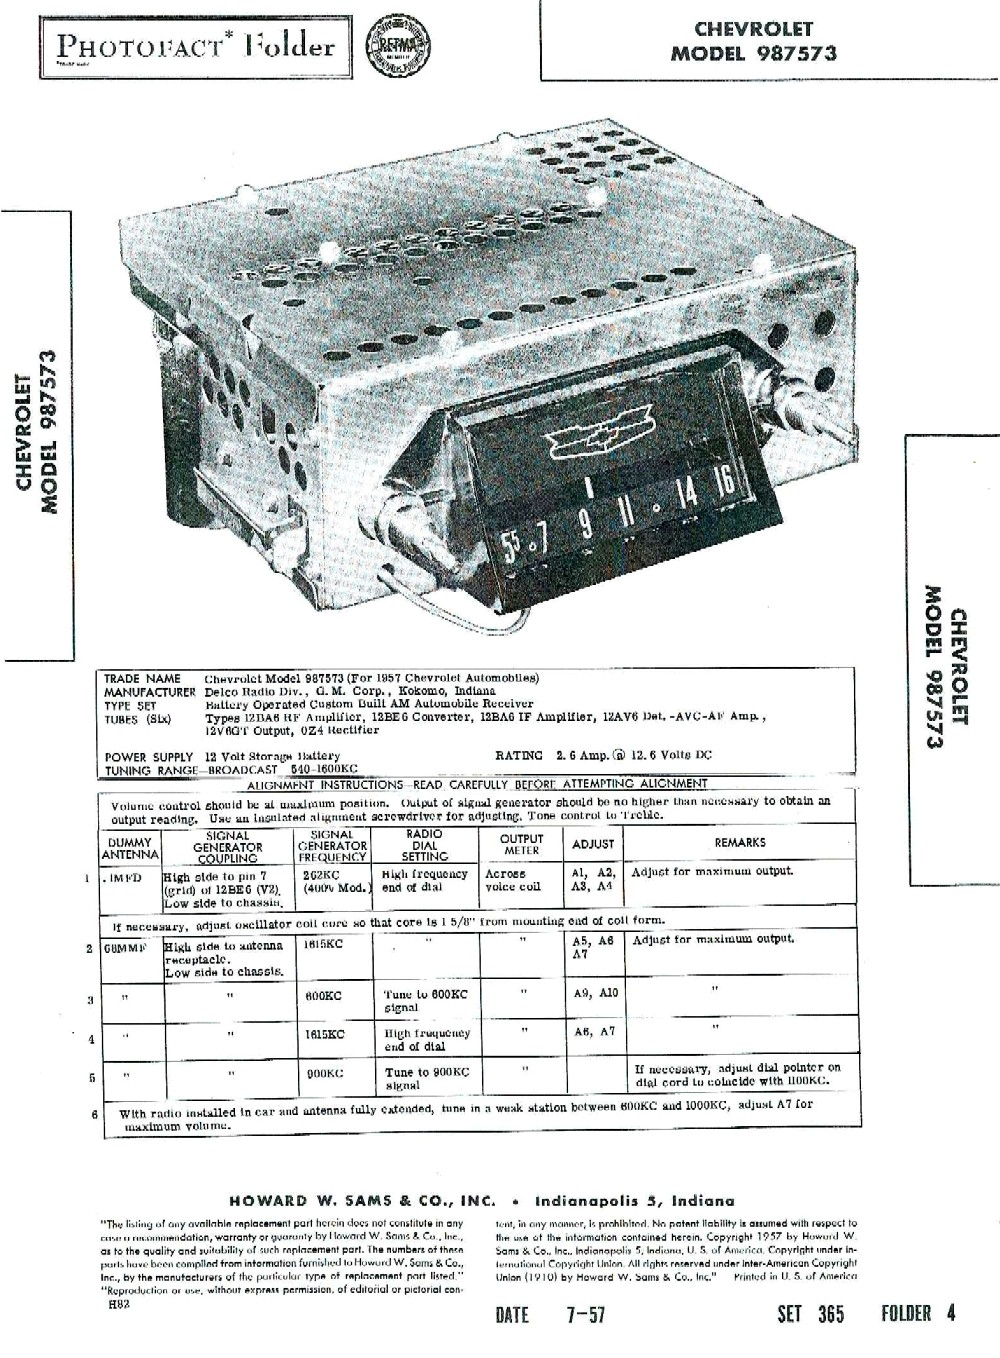 chevy radio 57 diagram of a toilet flush system 1951 chevrolet servicing truck brakes 1957 model 987573